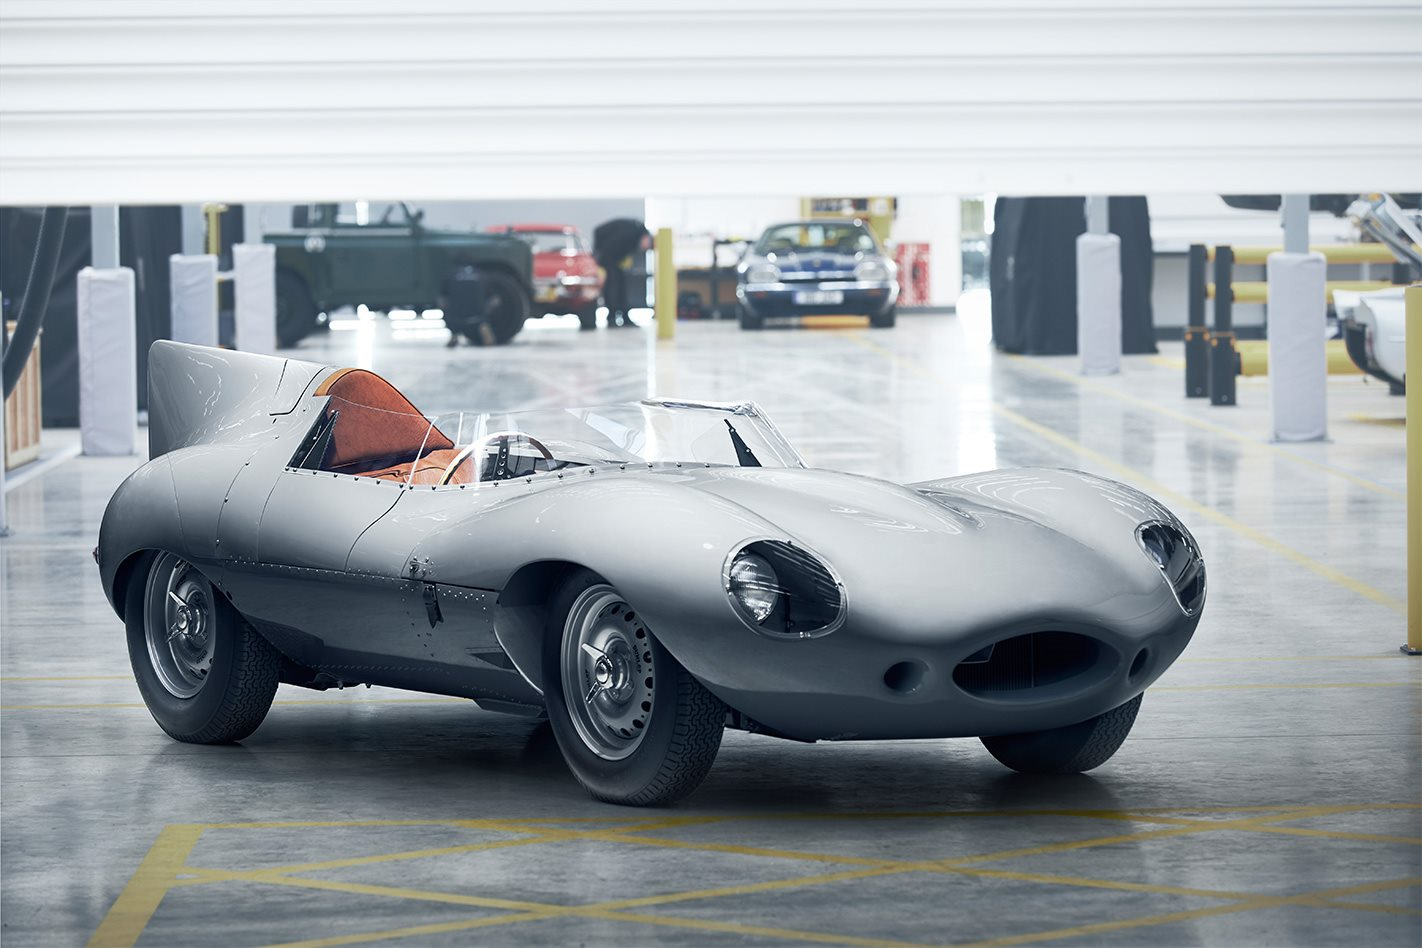 Jaguar resurrects classic D-Type for limited production run